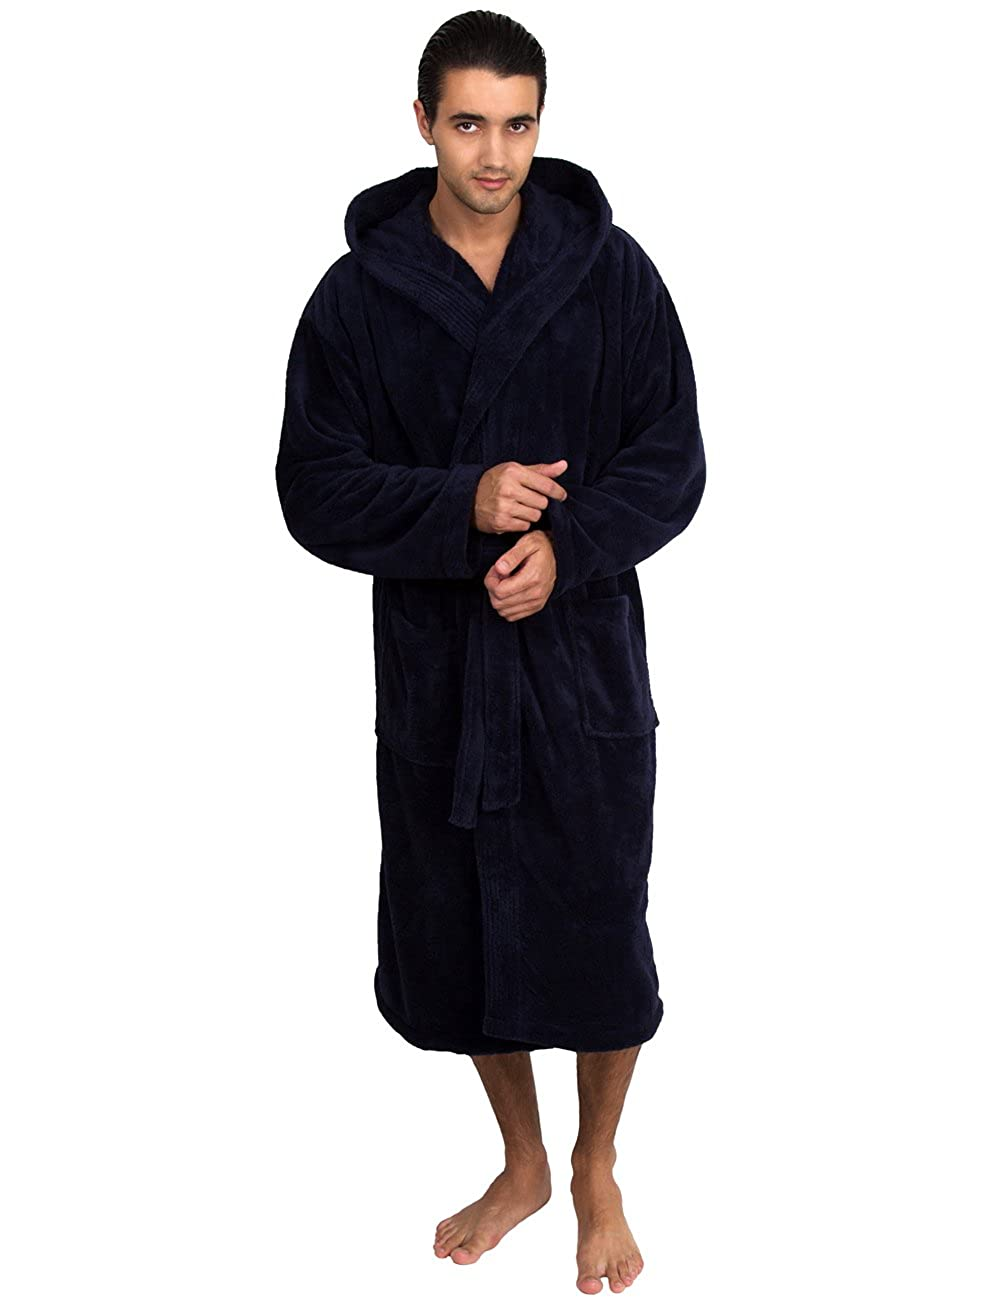 TowelSelections Men's Robe, Plush Fleece Hooded Spa Bathrobe, Made in Turkey